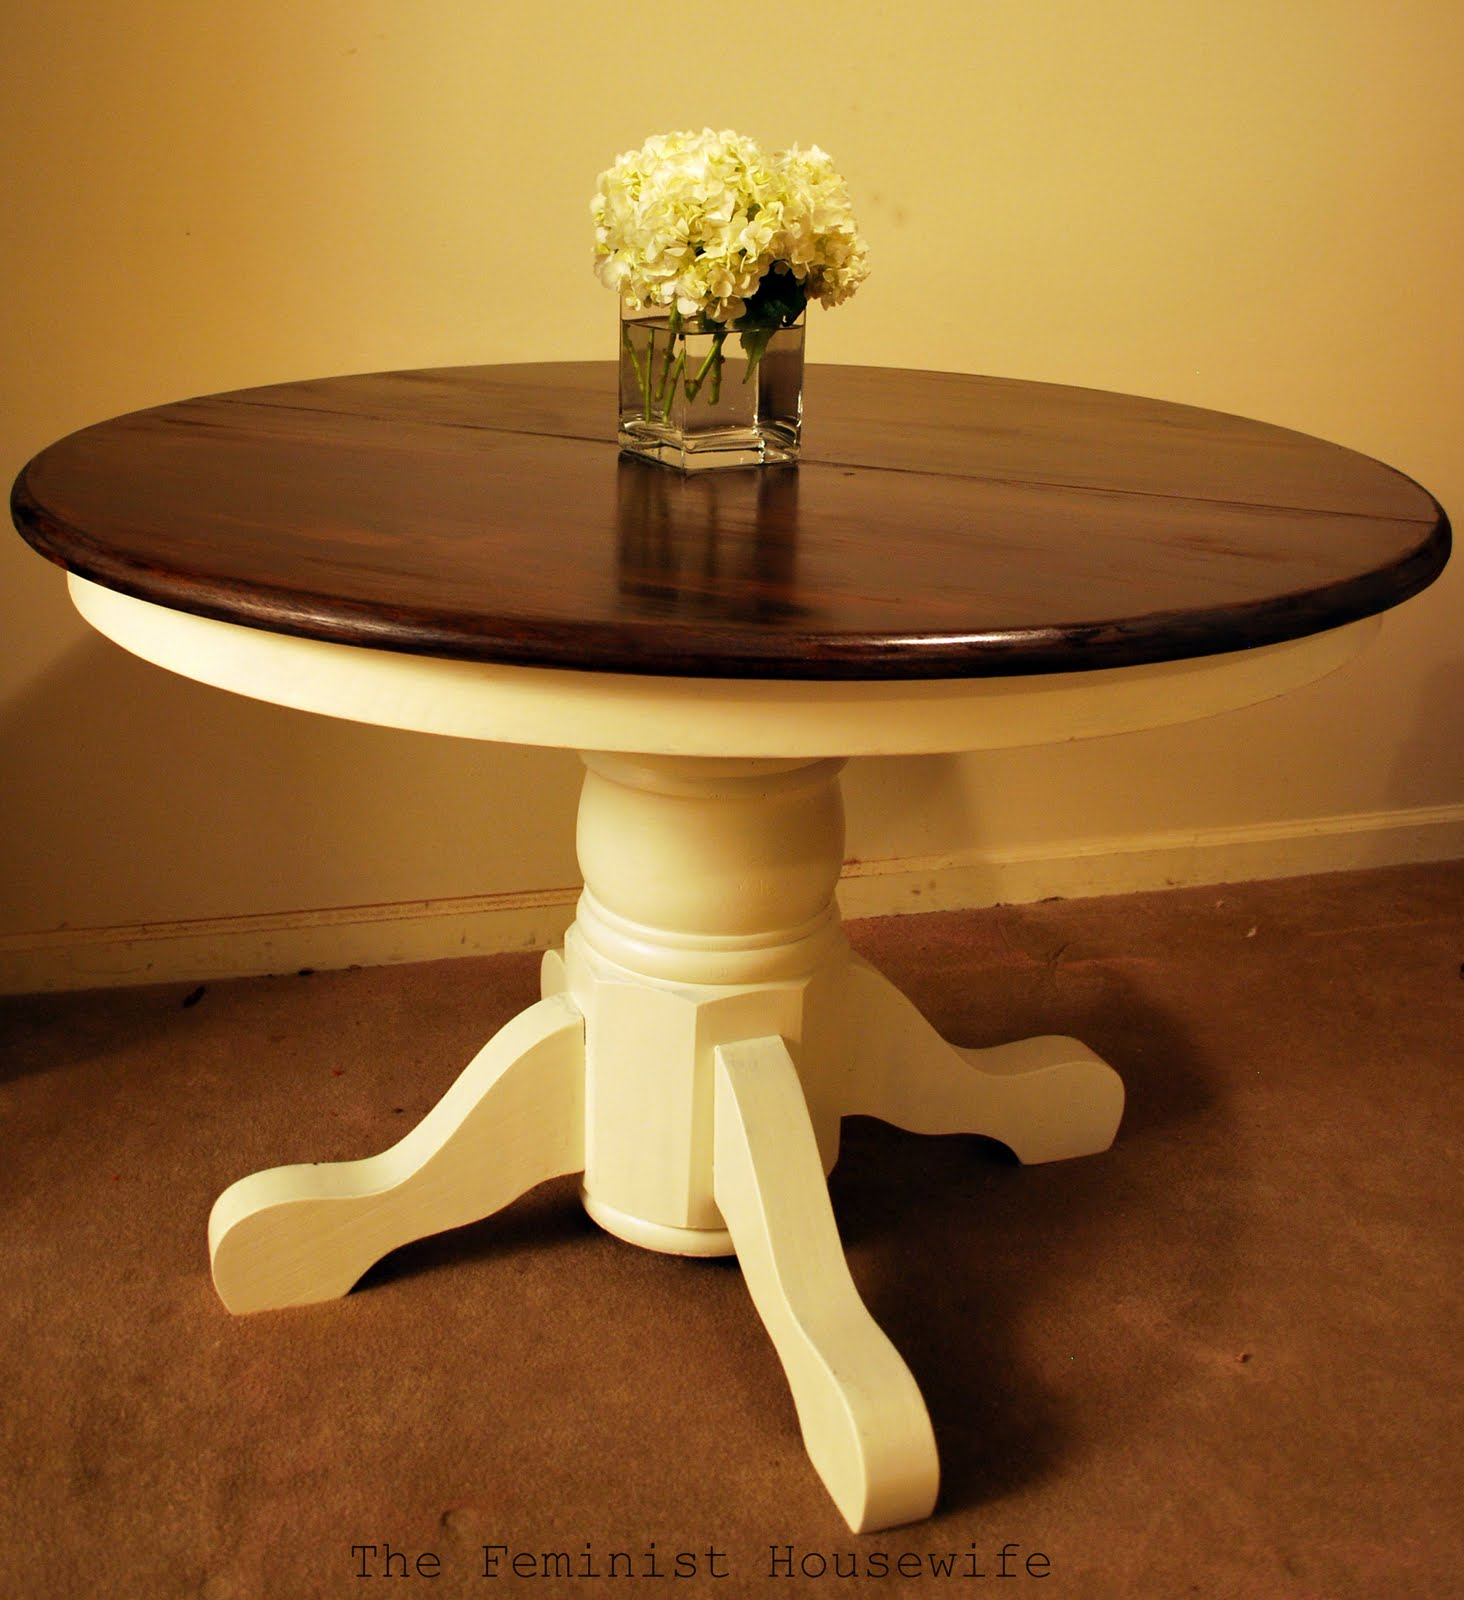 Fabulous The Feminist Housewife: Pedestal Table FAQ VX95